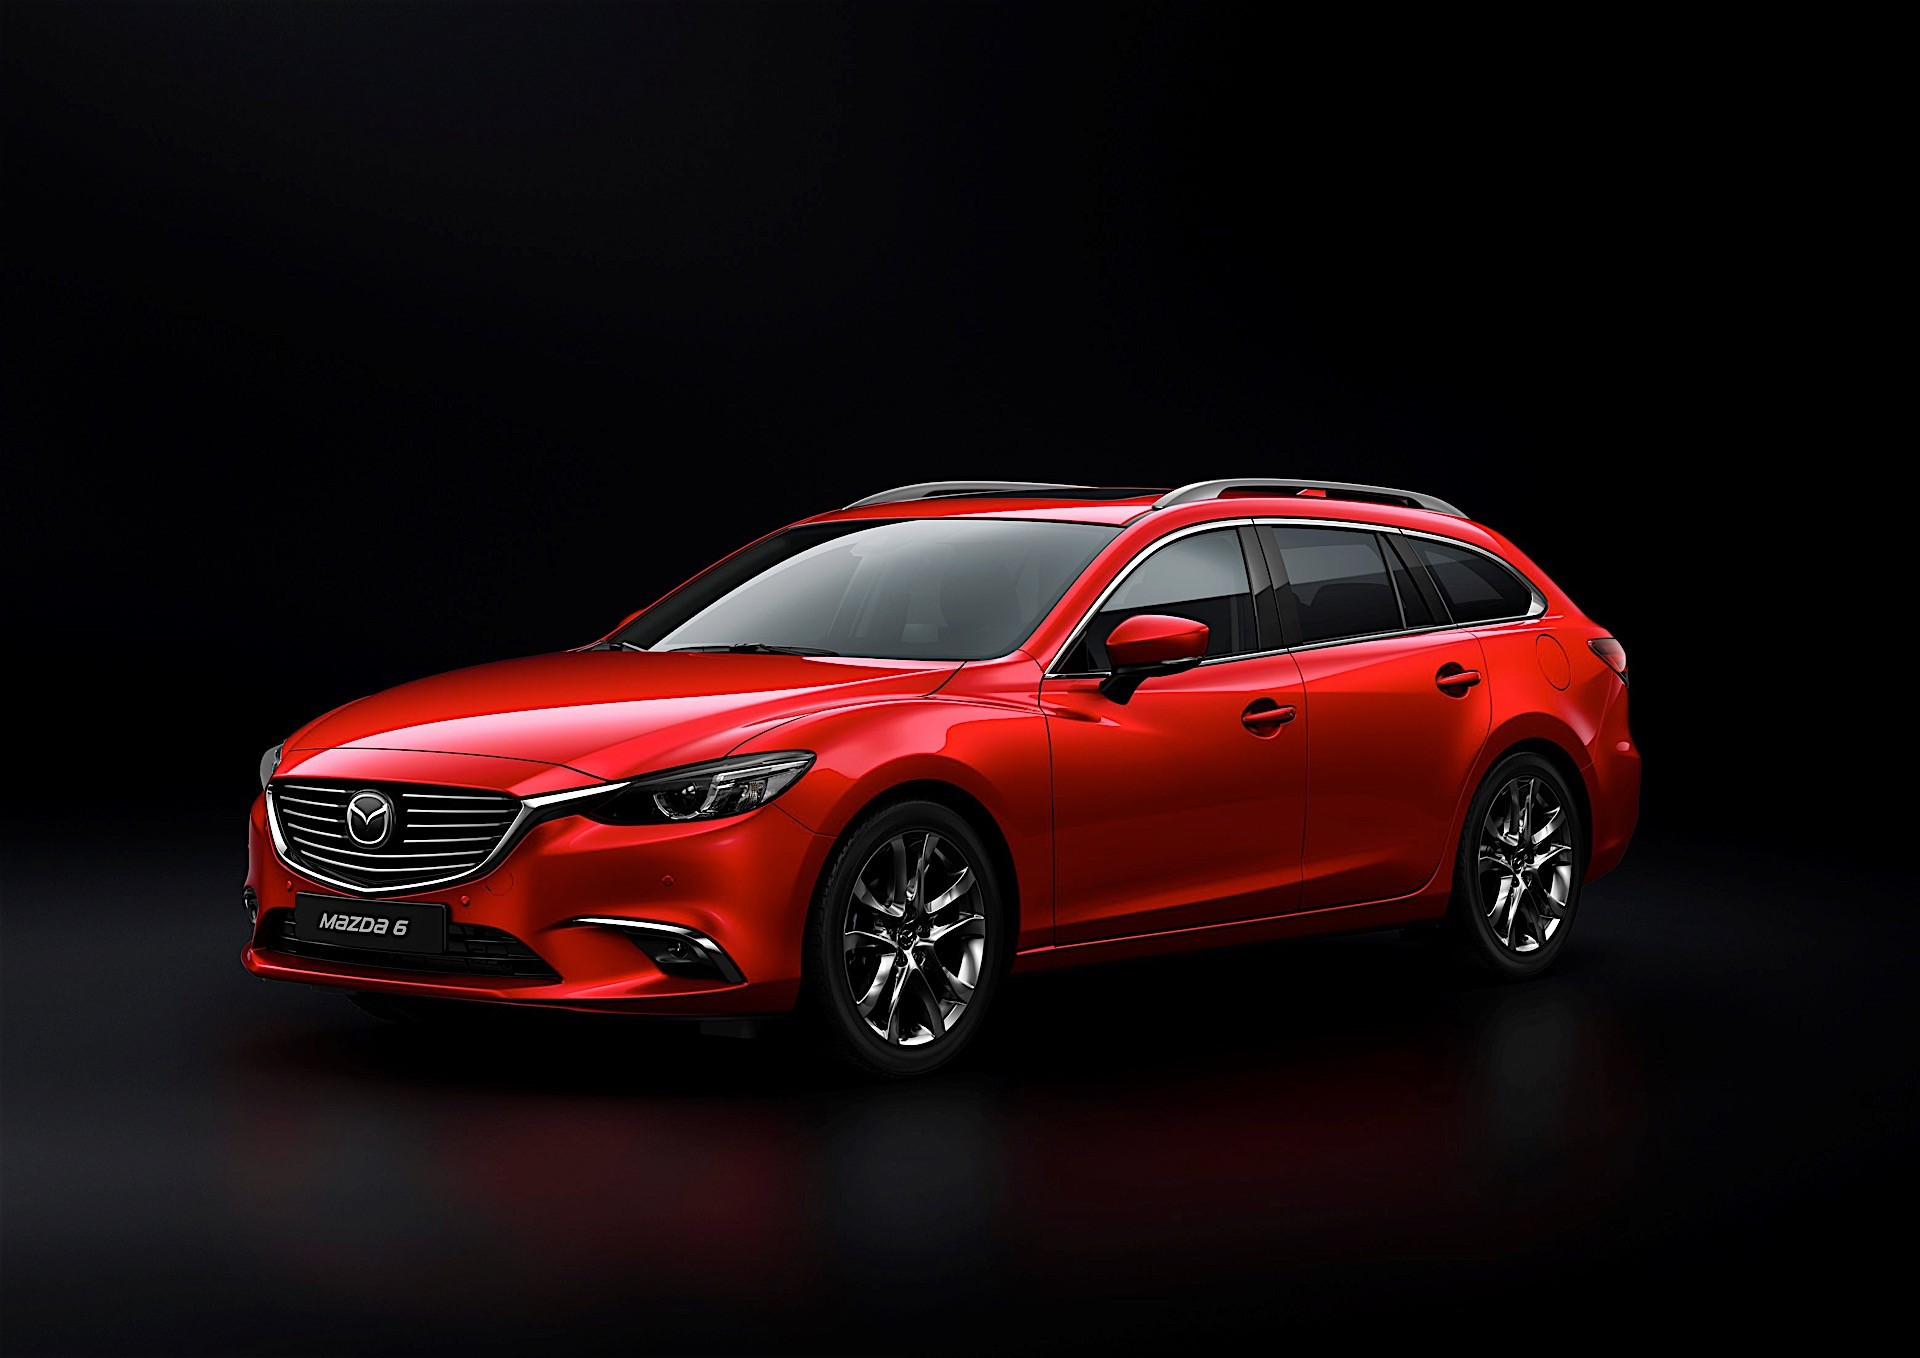 mazda fails to make a point with mazda6 ad by pitting it against a4 and c class autoevolution. Black Bedroom Furniture Sets. Home Design Ideas